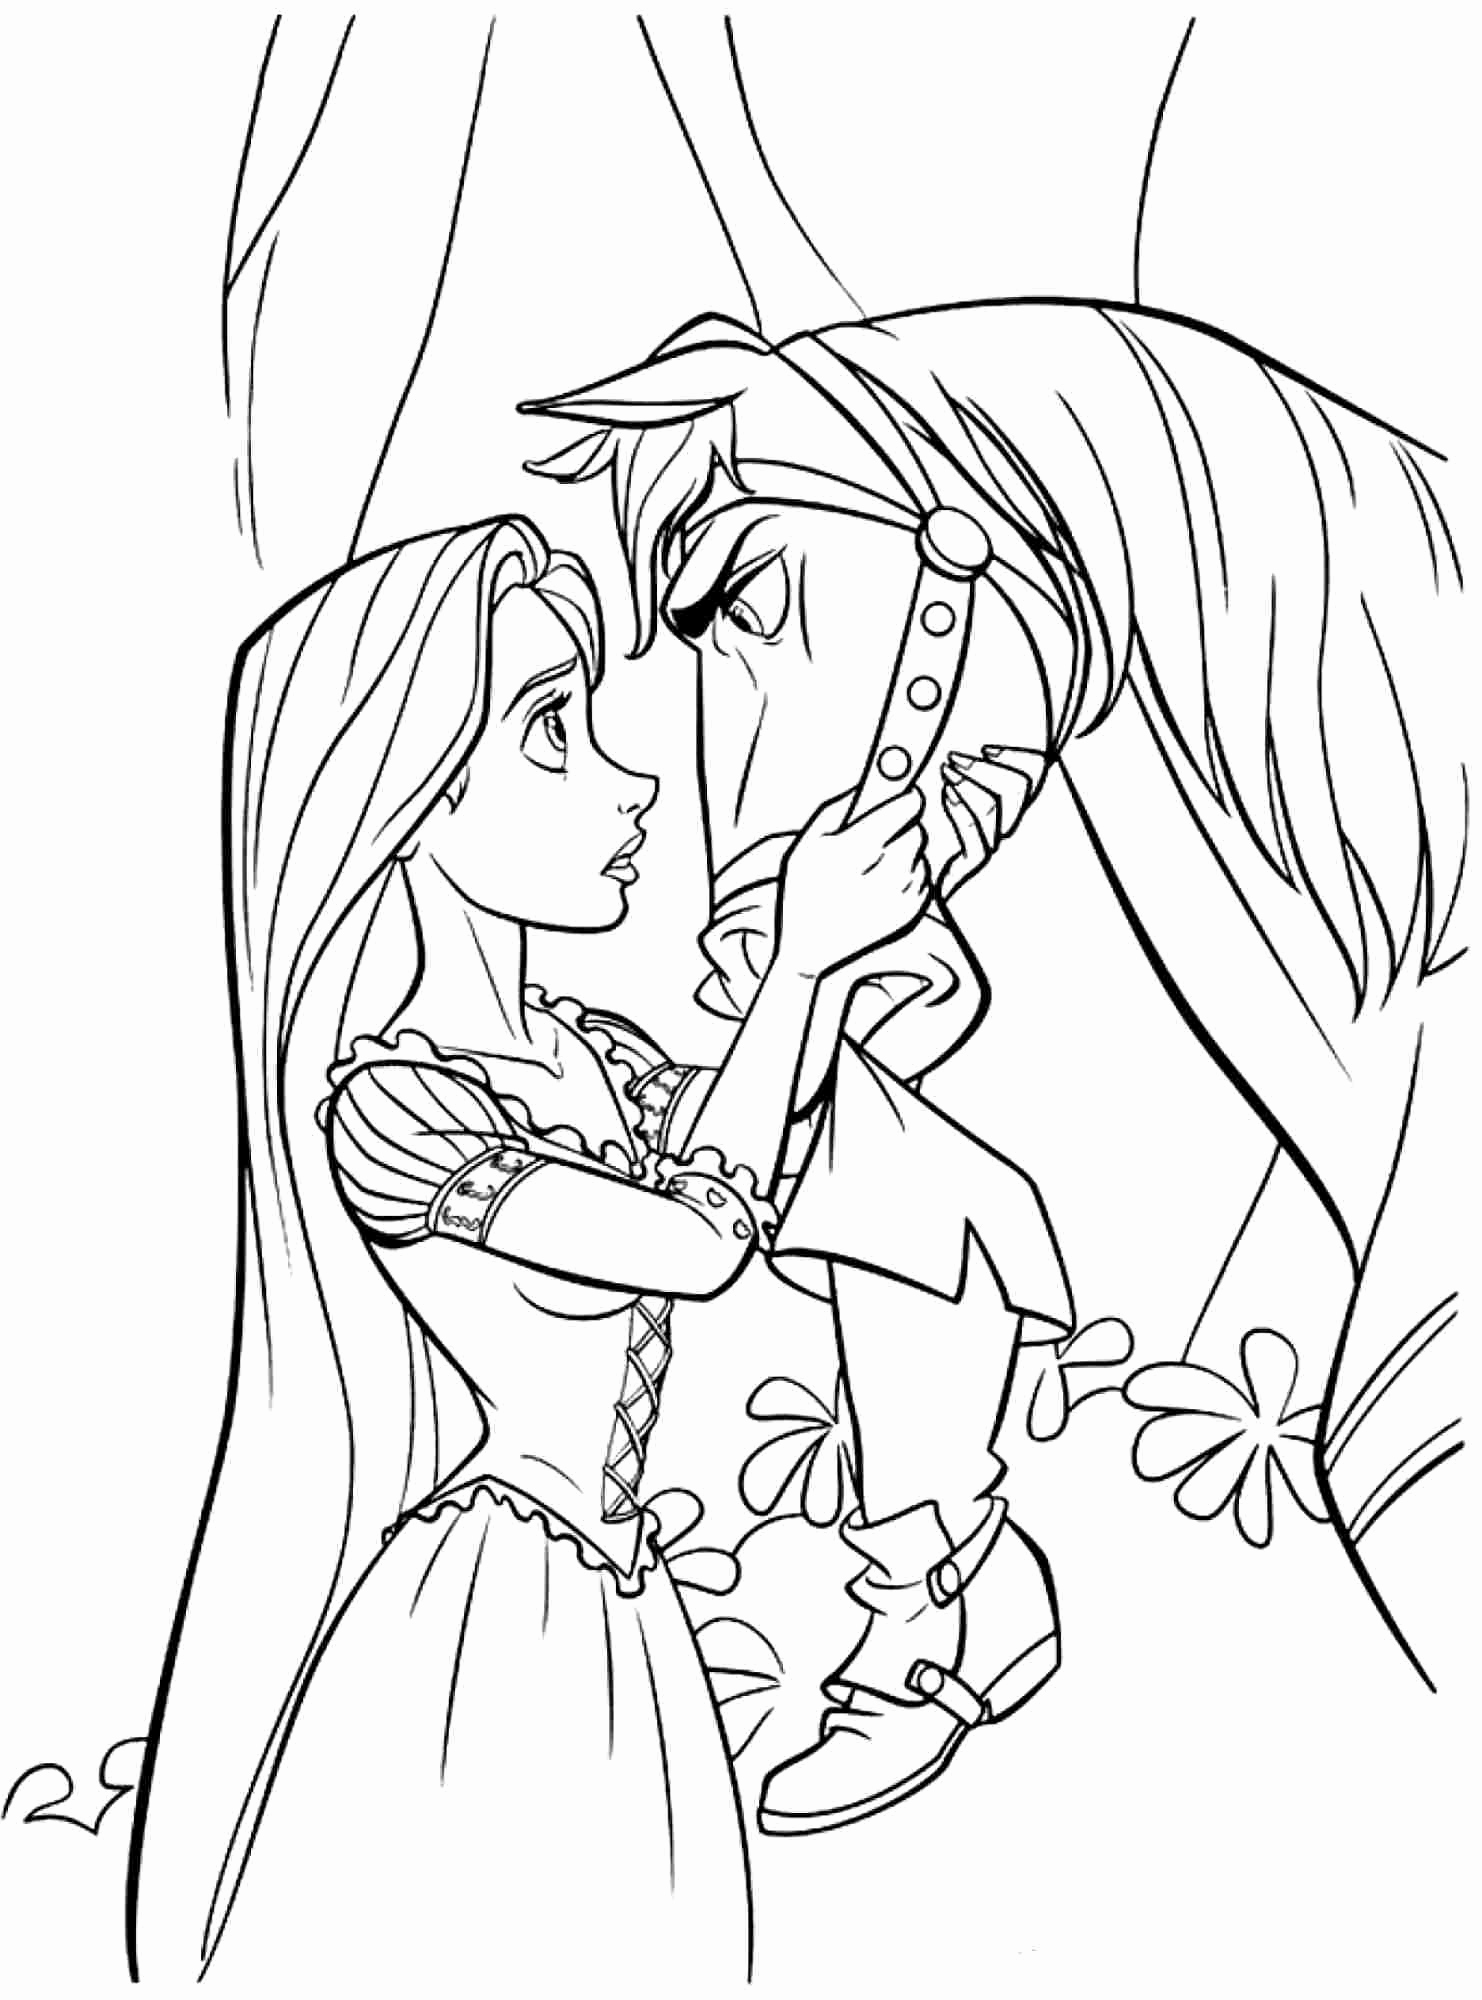 tangled the series coloring pages tangled the series coloring pages printable pages the series coloring tangled